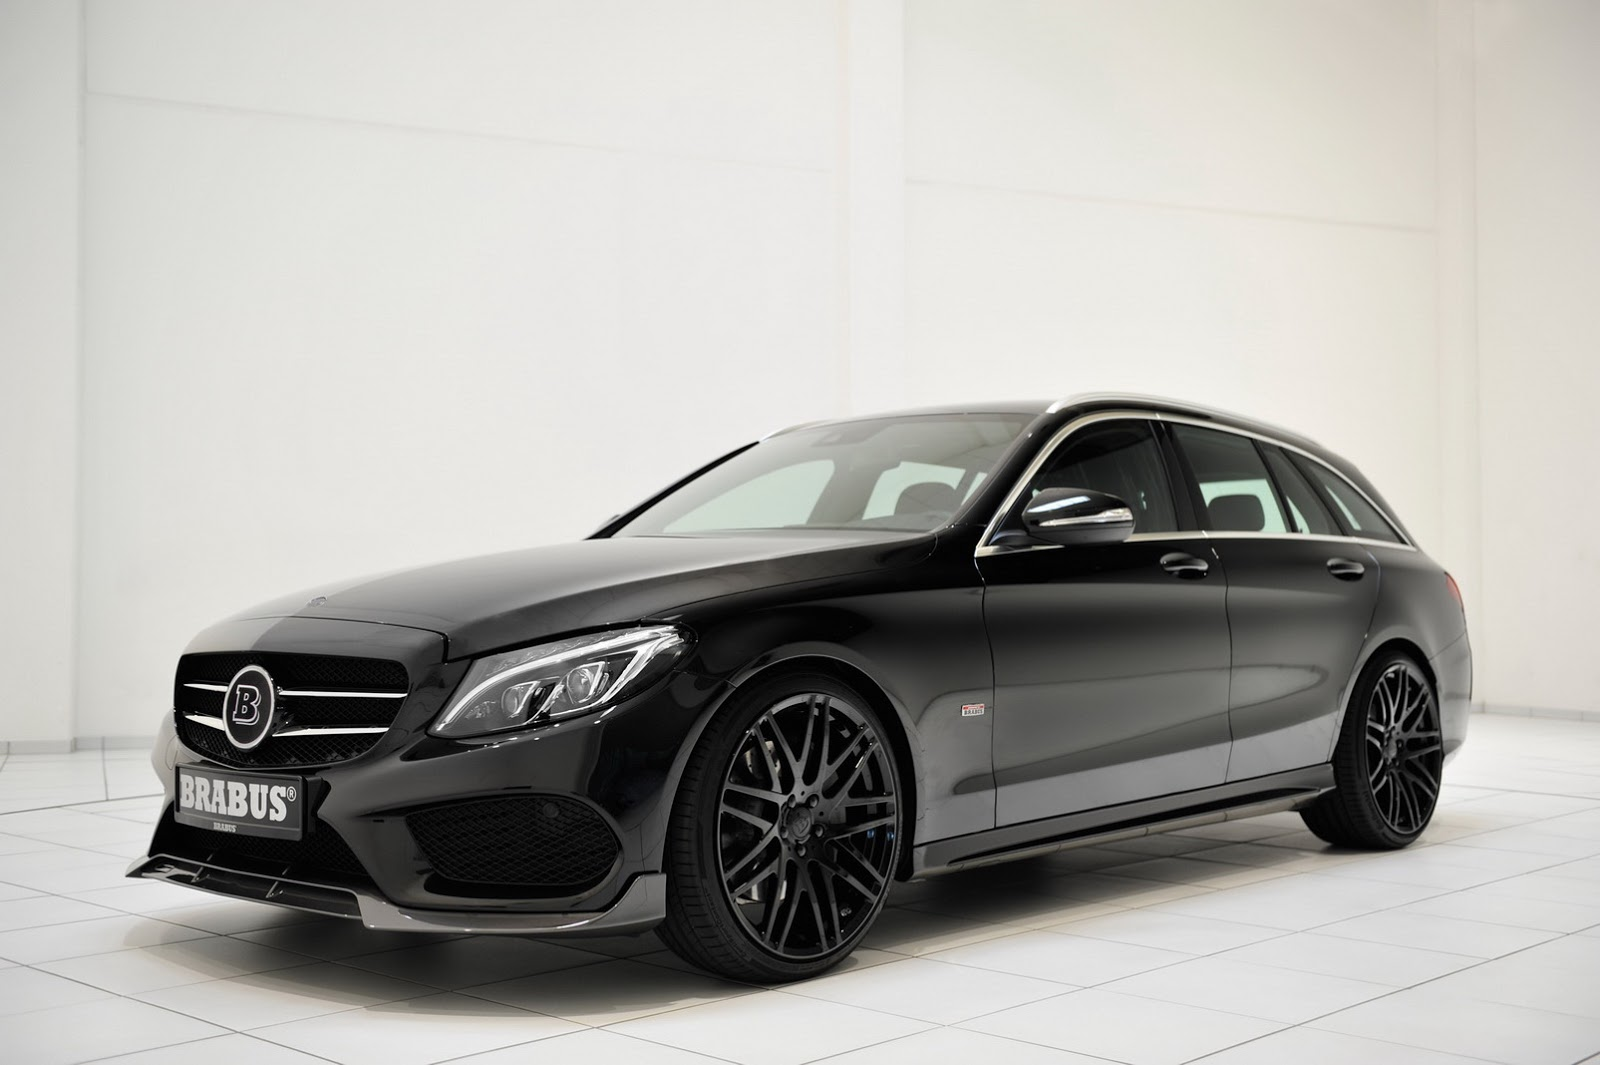 brabus turns the wick on new mercedes benz c class wagon. Black Bedroom Furniture Sets. Home Design Ideas